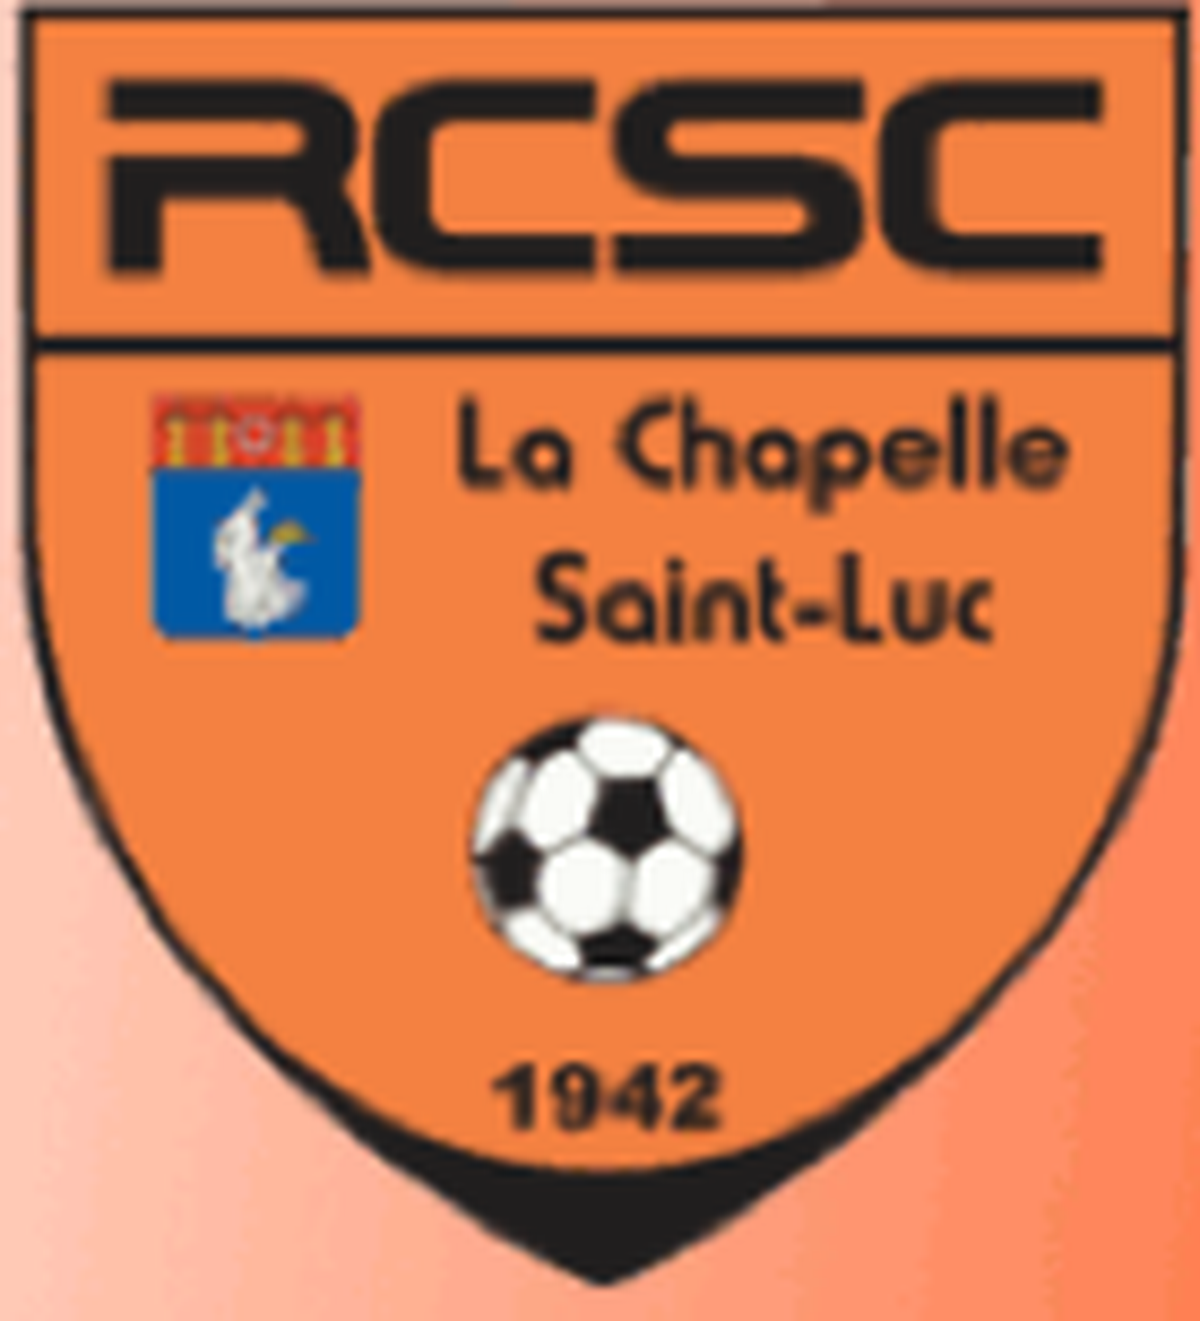 rcsc la chapelle st luc site officiel du club de foot de la chapelle st luc footeo. Black Bedroom Furniture Sets. Home Design Ideas